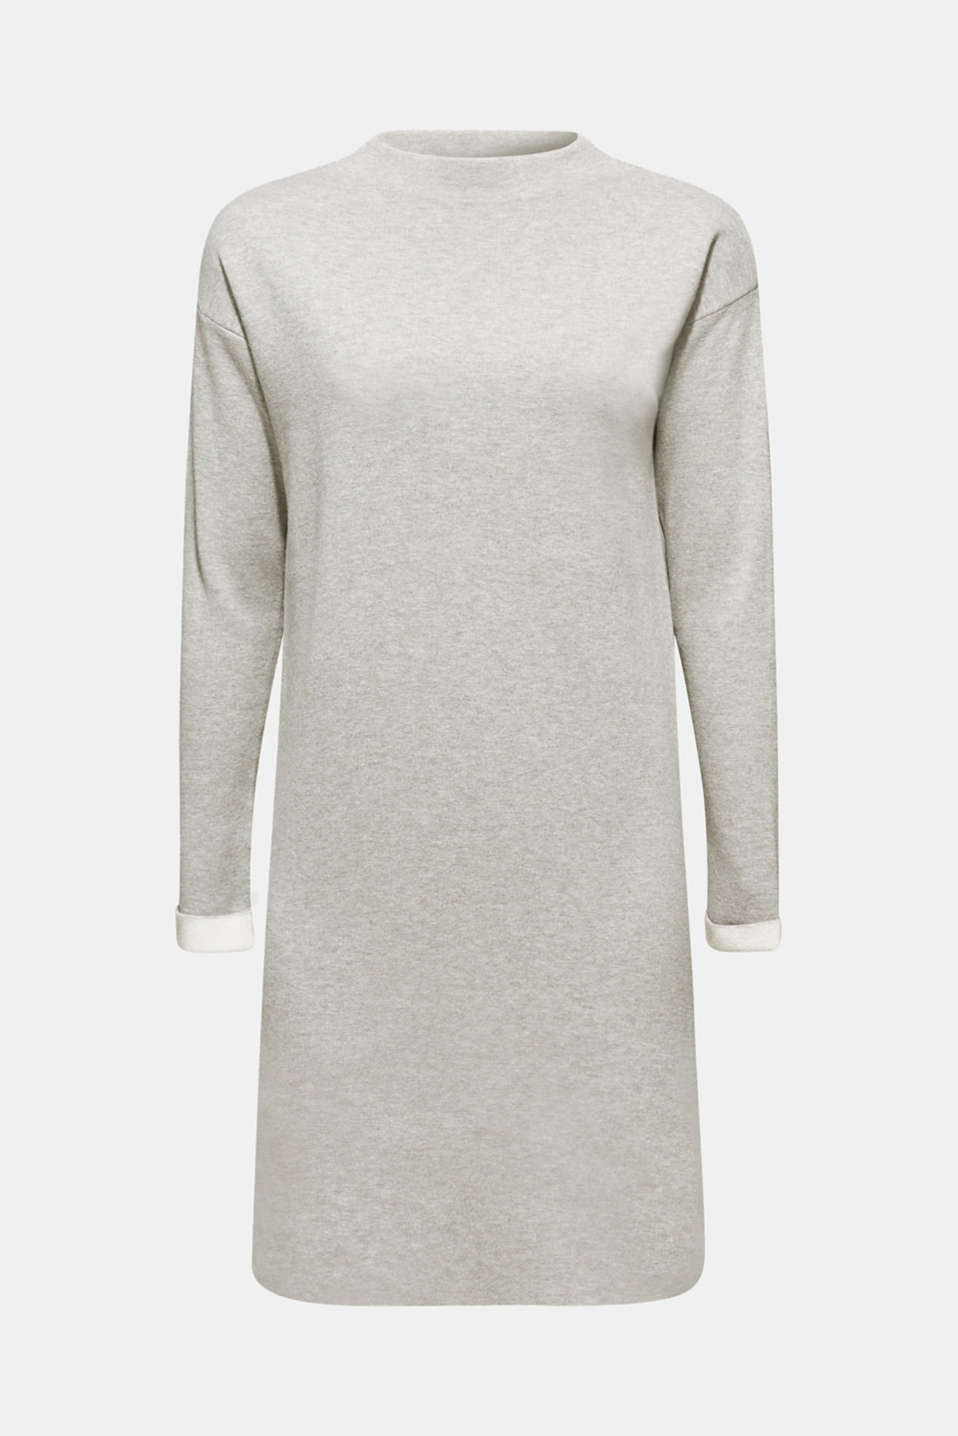 Dresses flat knitted, LIGHT GREY 5, detail image number 6